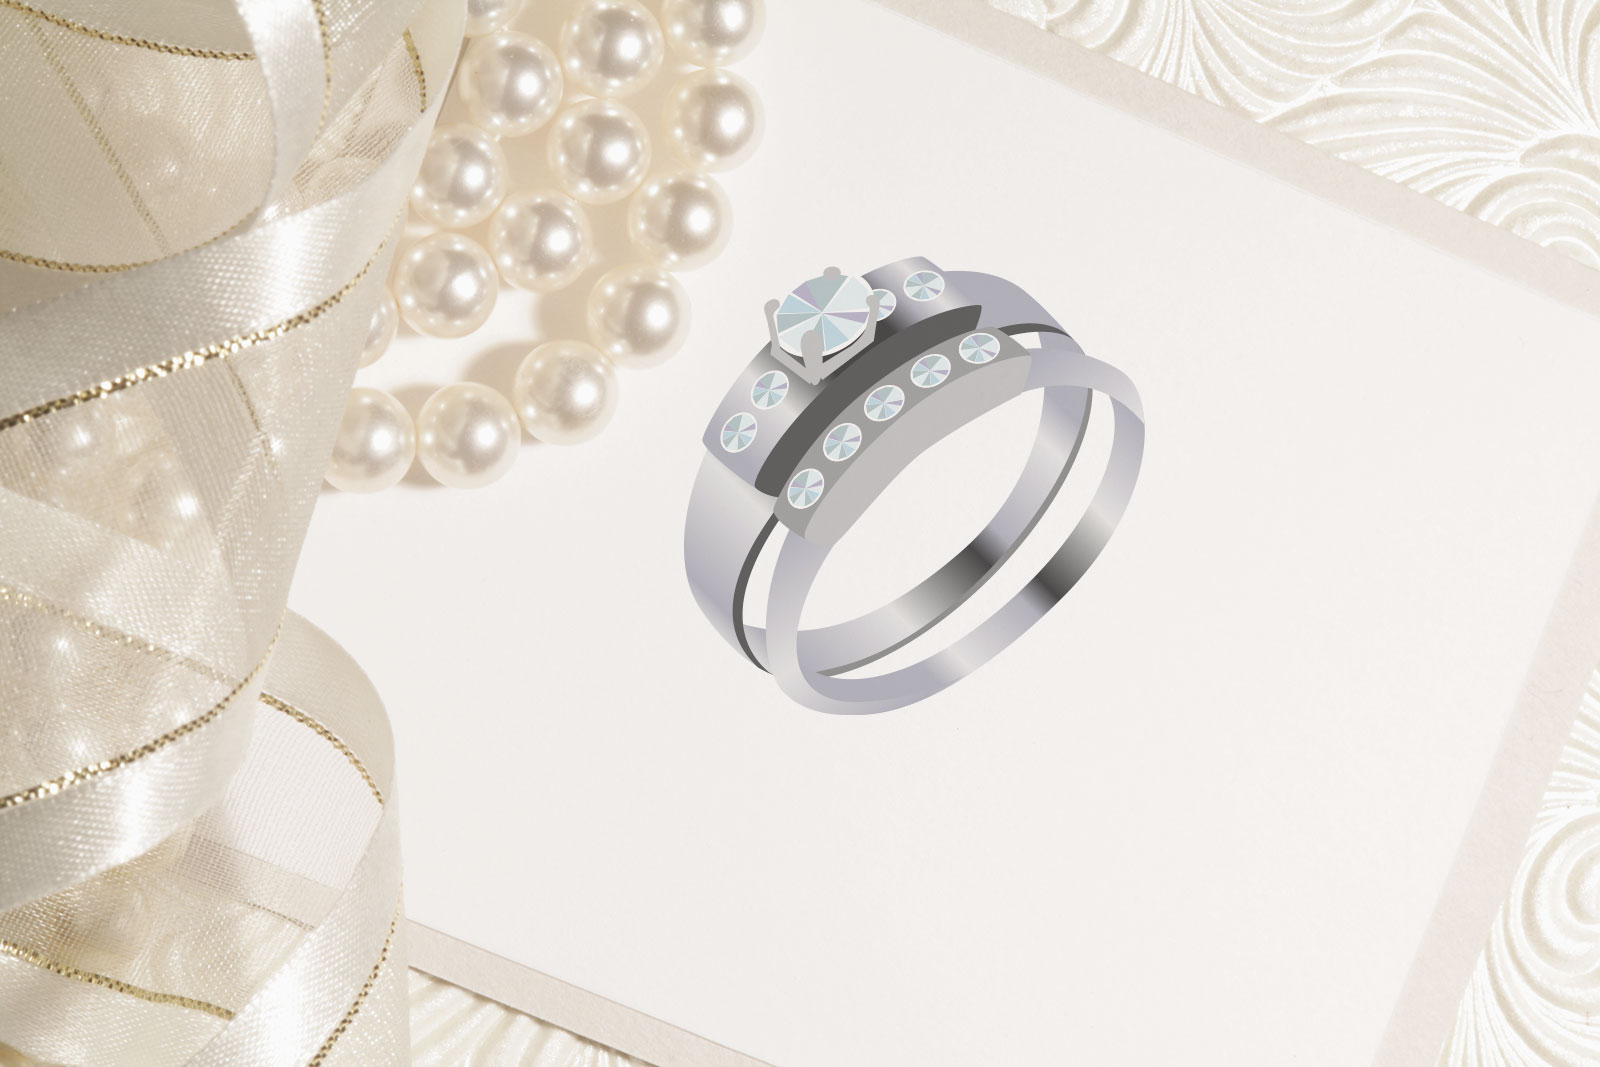 hight resolution of wedding ring clipart